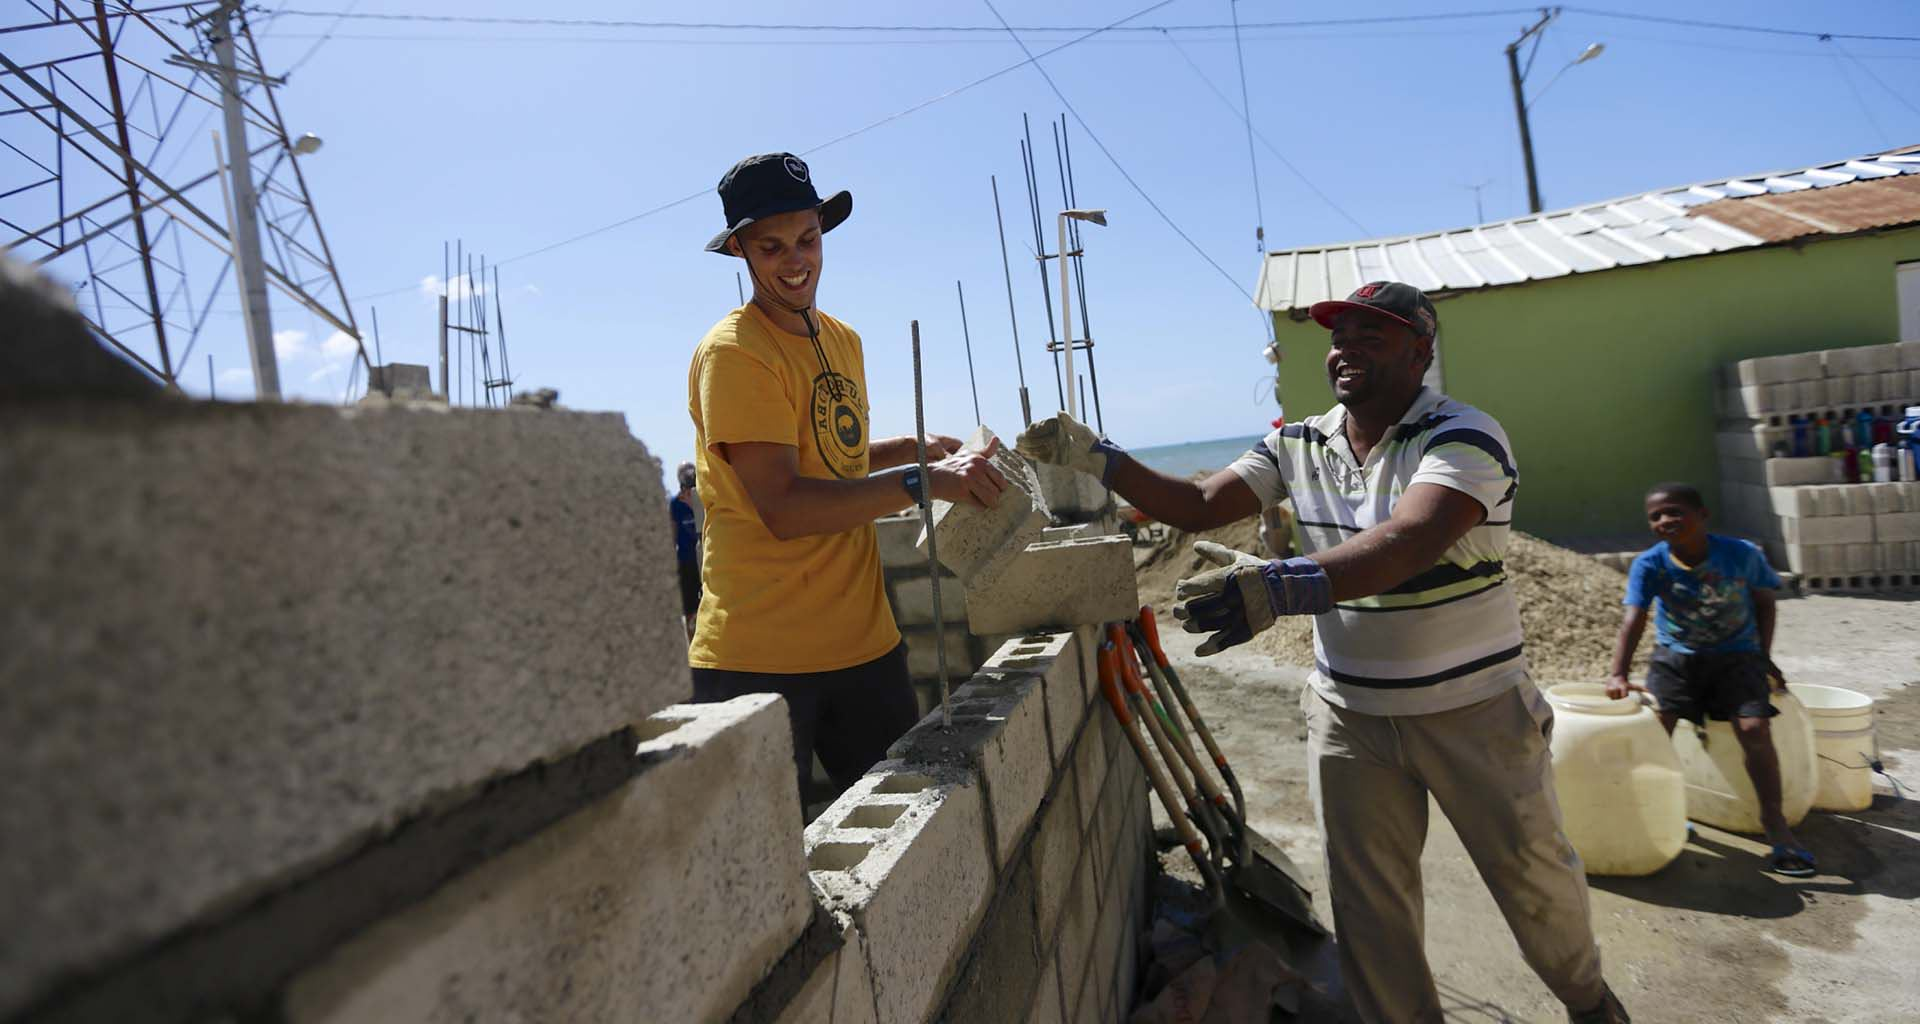 Student helps lay cement bricks to build infrastructure for a rural community in Africa